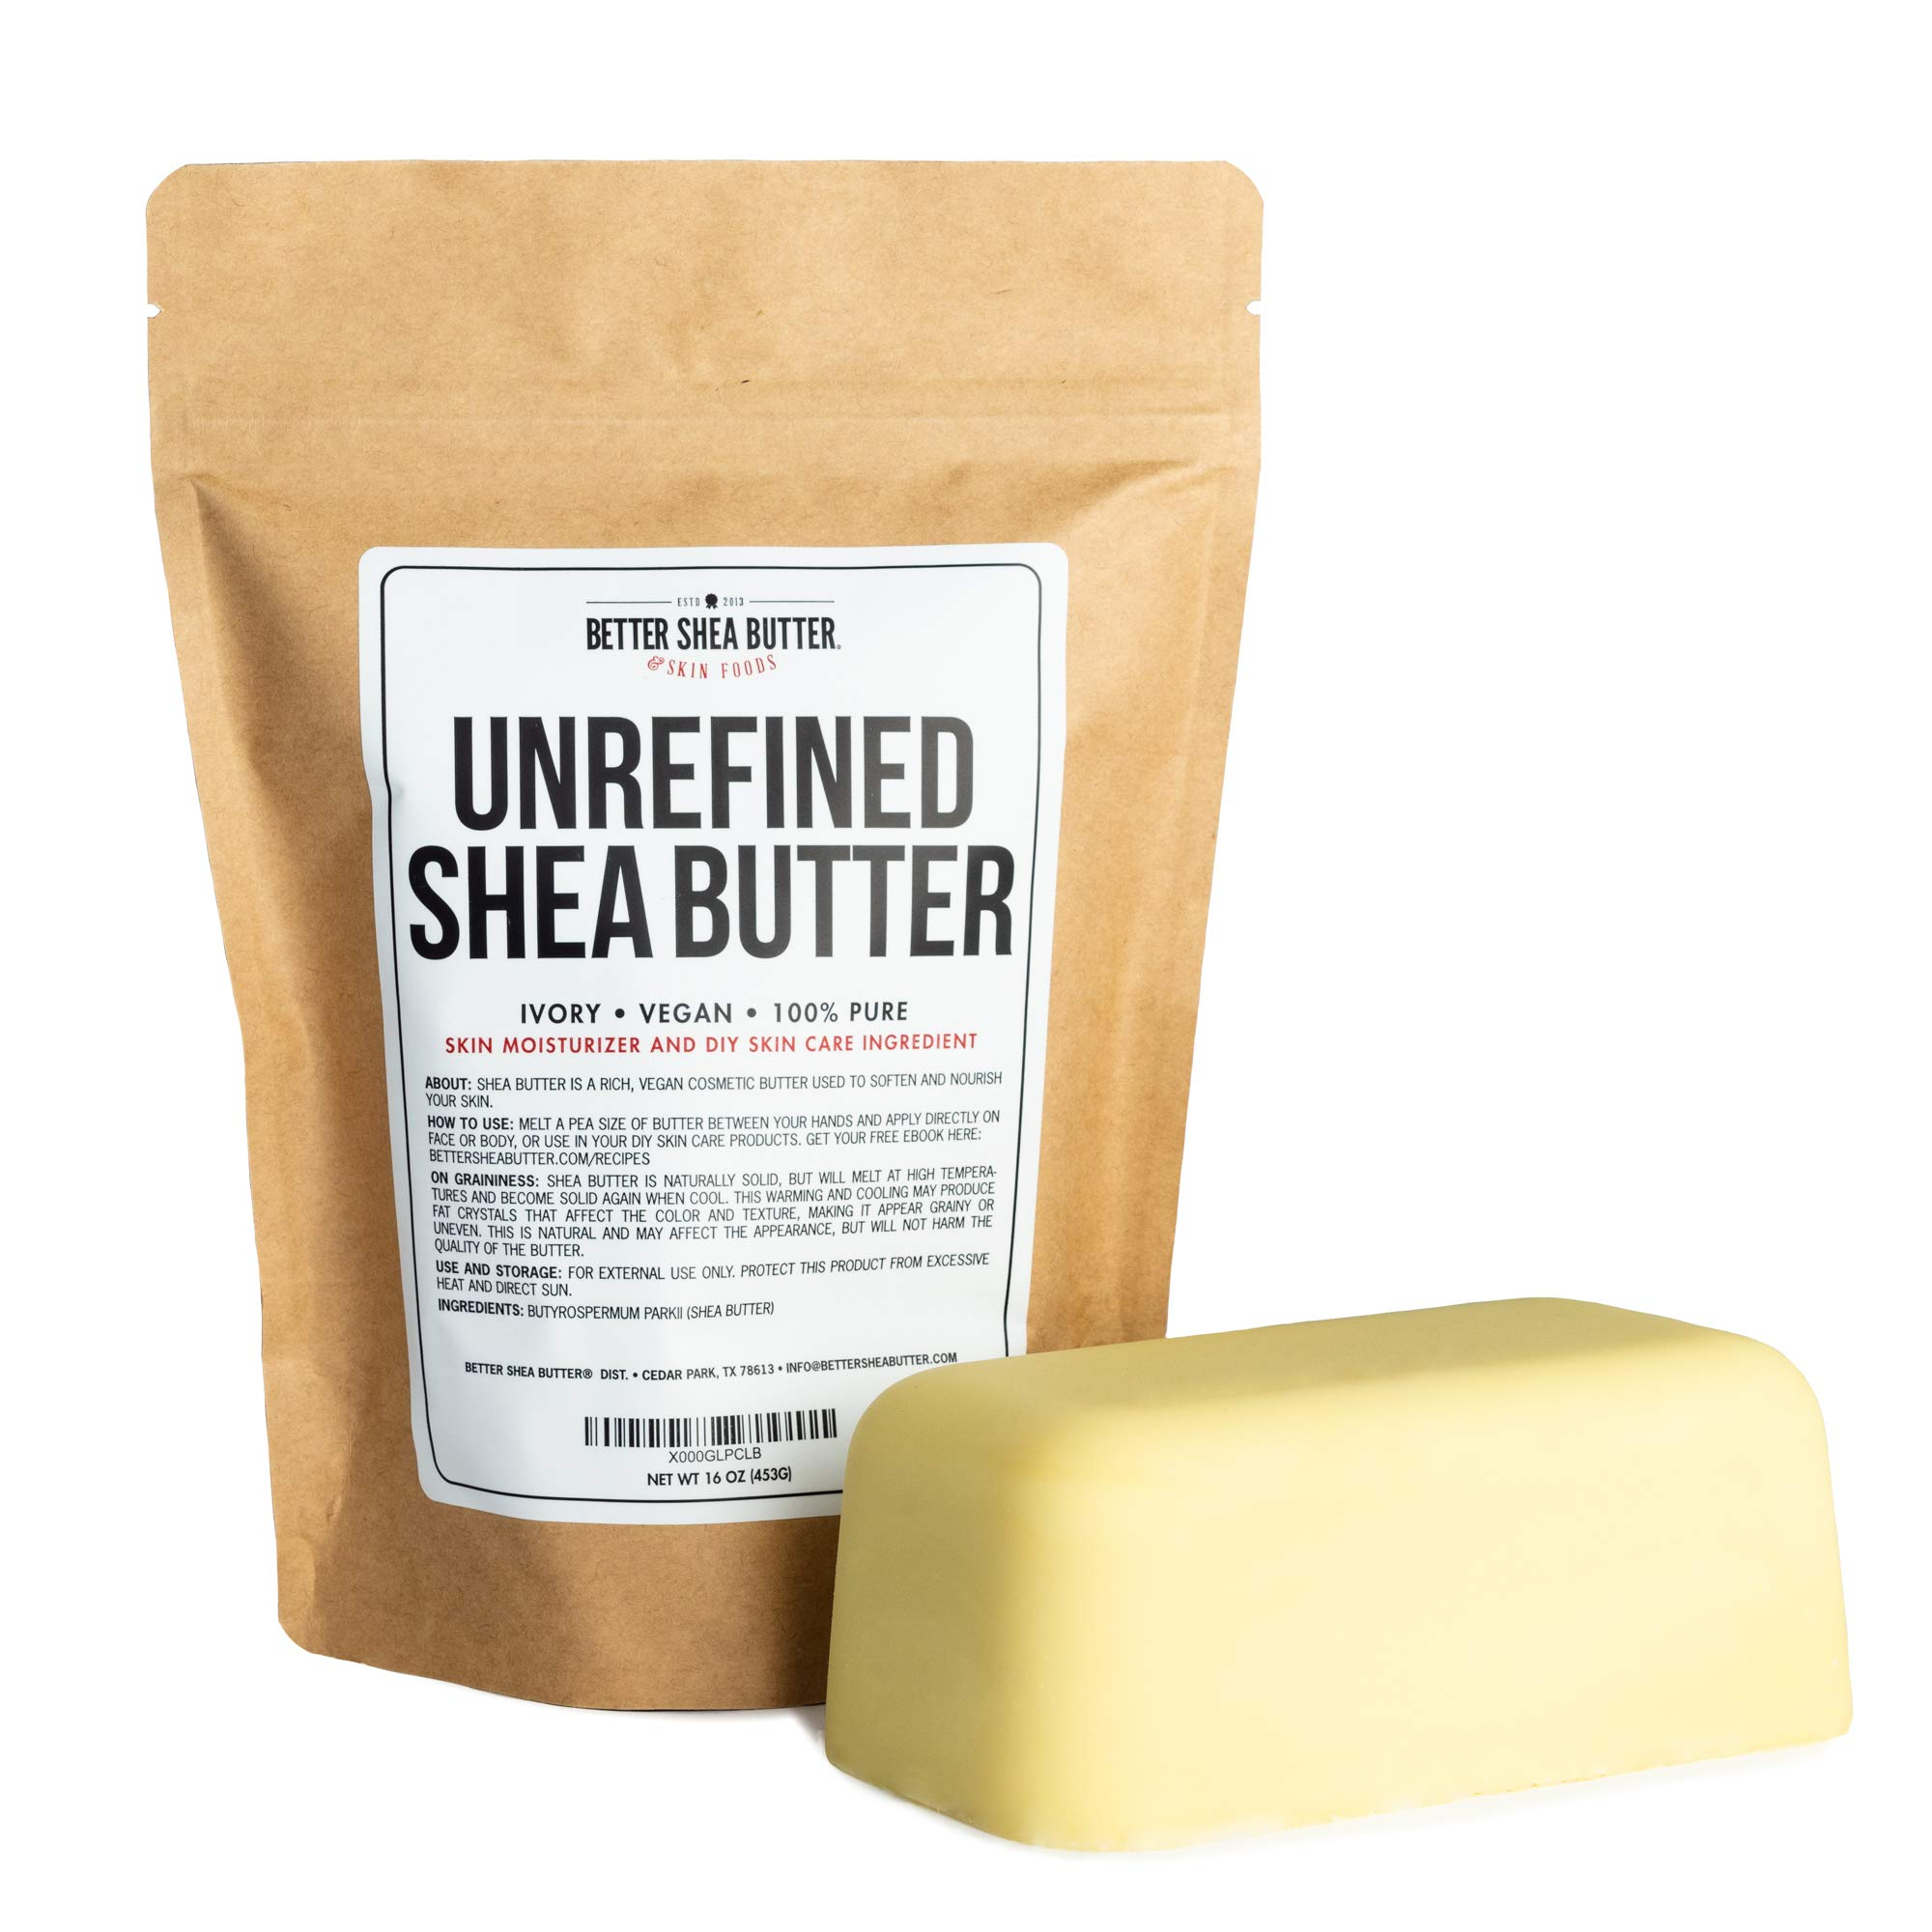 Unrefined African Shea Butter - Ivory, 100% Pure & Raw - Moisturizing and Rich Body Butter for Dry Skin - Suitable for All Skin Types - Use Alone or in DIY Whipped Body Butters - 16 oz (1 LB) Bar by Better Shea Butter